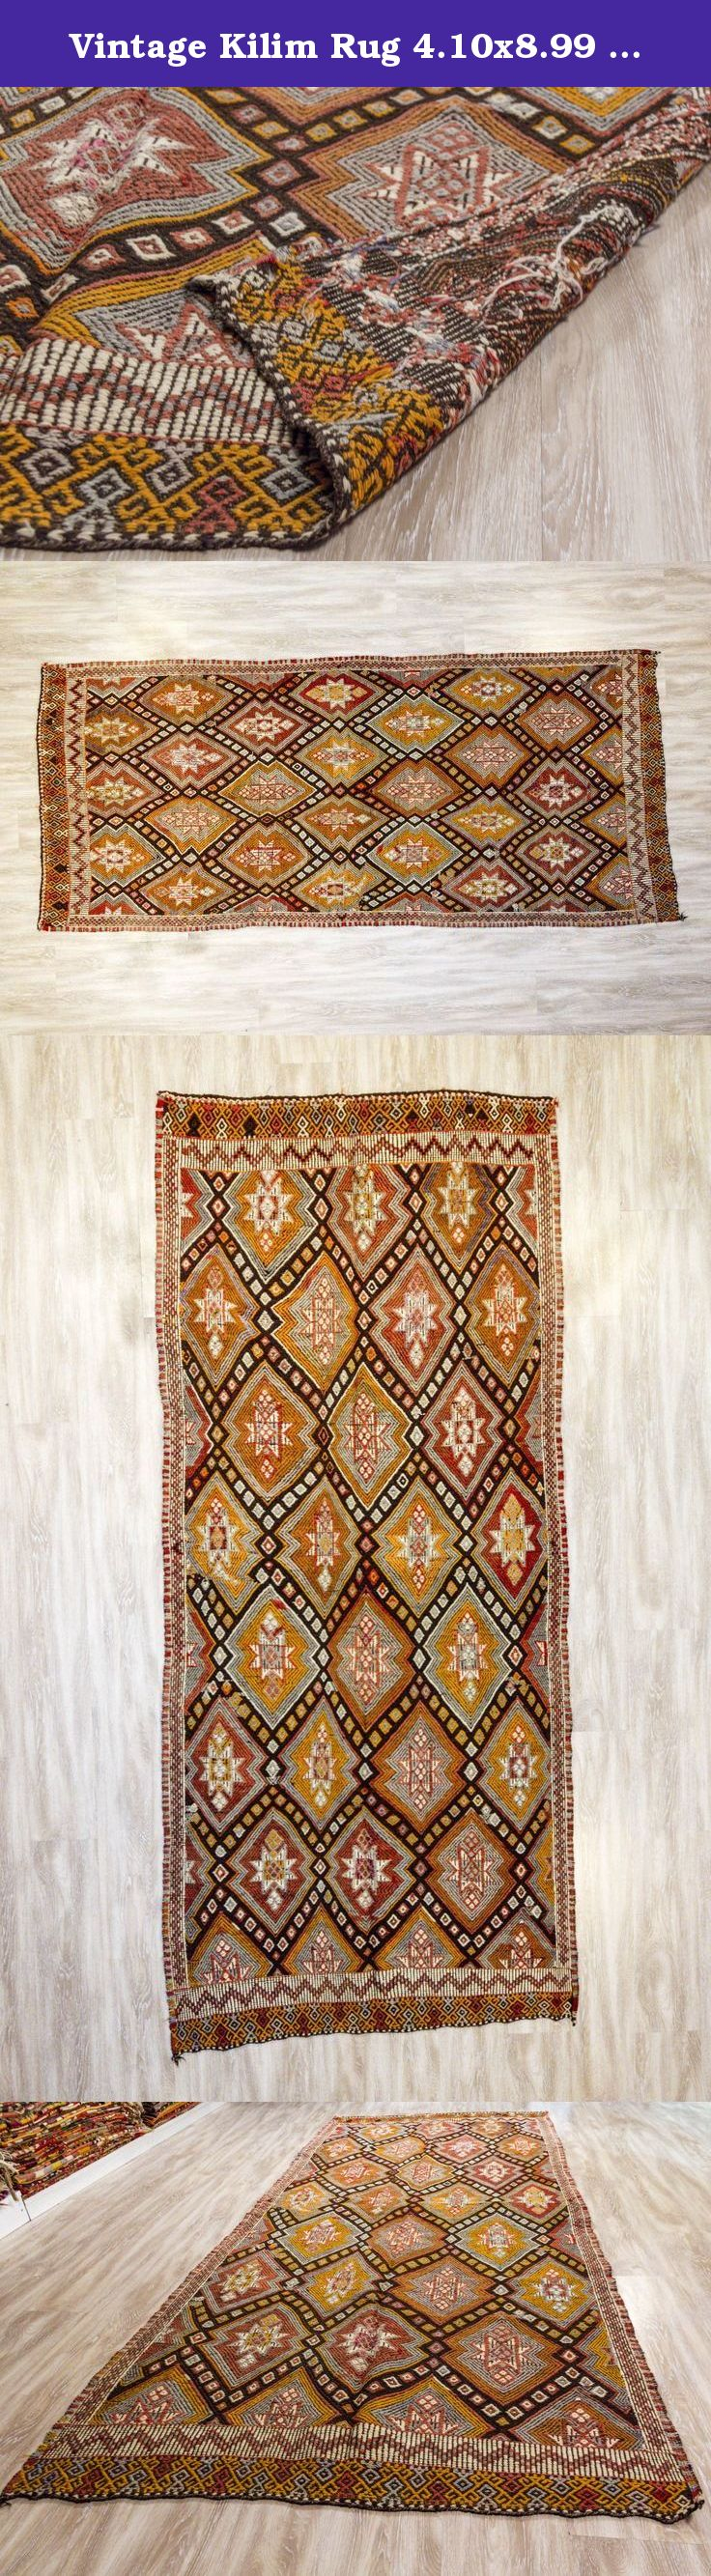 Vintage Kilim Rug 4.10x8.99 ft (125x274 cm). Beautiful vintage Turkish kilim rug around 50-60 years old and in very good condition. Material: 100%wool, hand woven. Size: 4.10x8.99 ft (125x274 cm) Shipping in 1-3* days We use express shipping; USA maximum 4 business days,Europe max. 3 business days *Please note that; we rework all Kilims before ship ( head/end corrections,fringe creation, stretching, border correction,local corrections and re-cleaning etc) We deliver it in perfect…